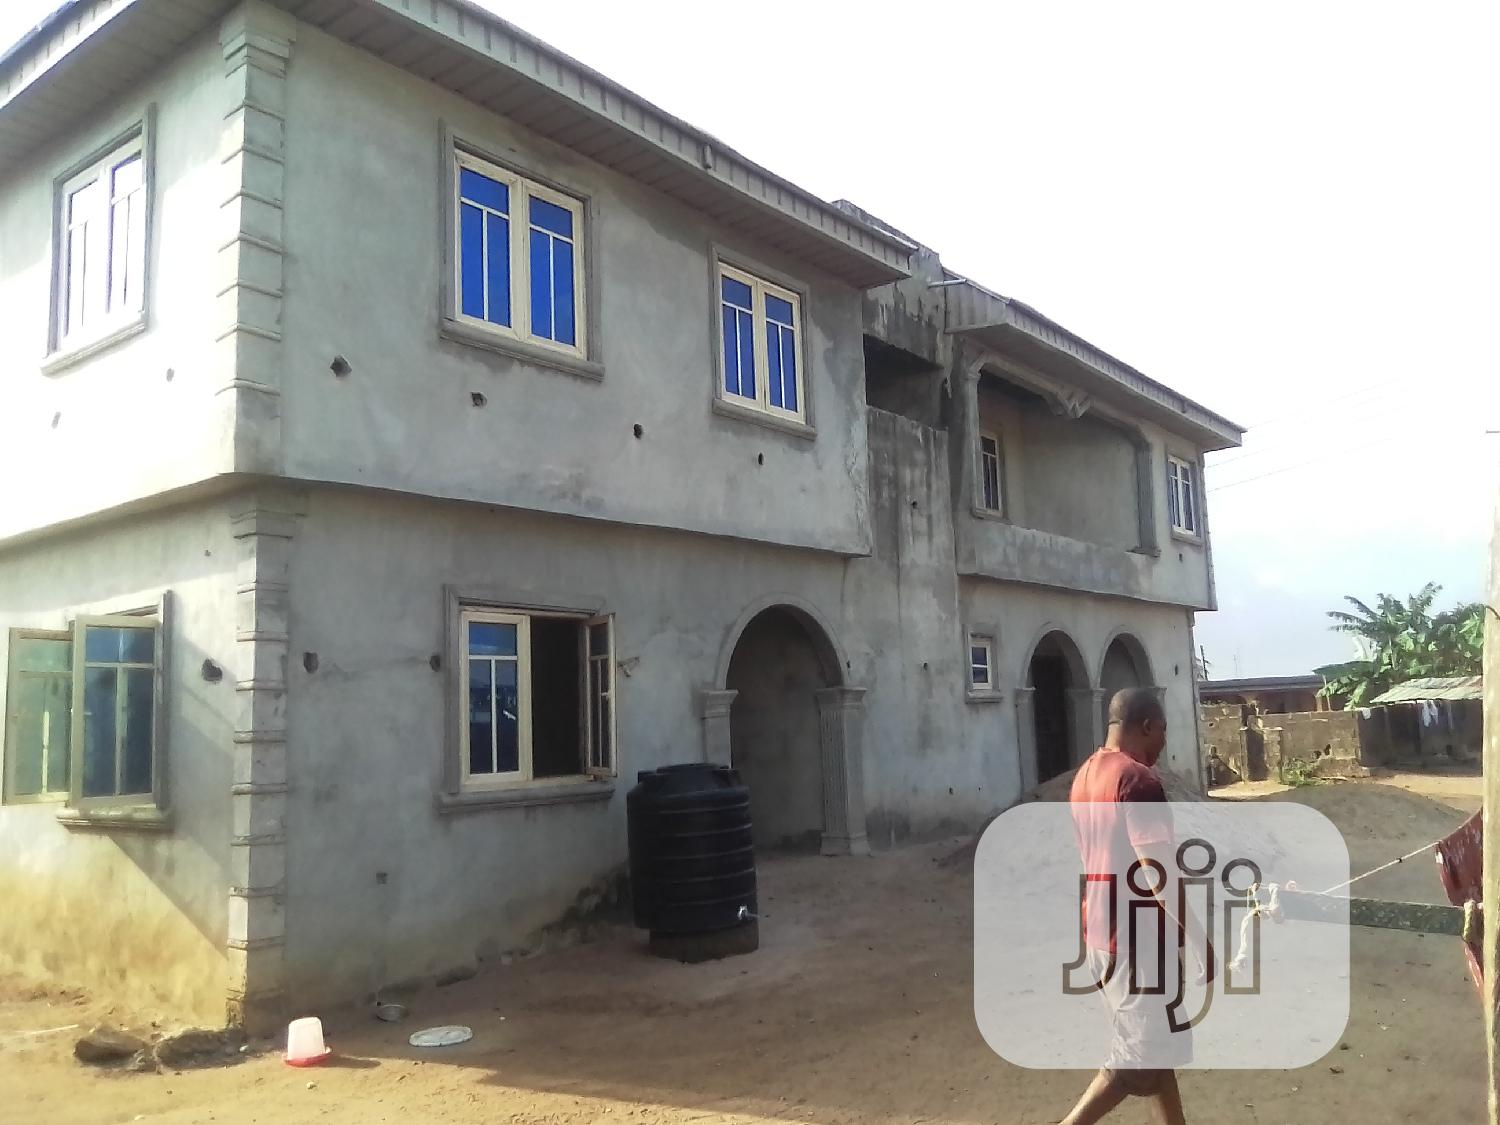 Well Built Duplex For Sale With Registered Survey, Deed And Land Receipt | Houses & Apartments For Sale for sale in Badagry / Badagry, Badagry, Nigeria